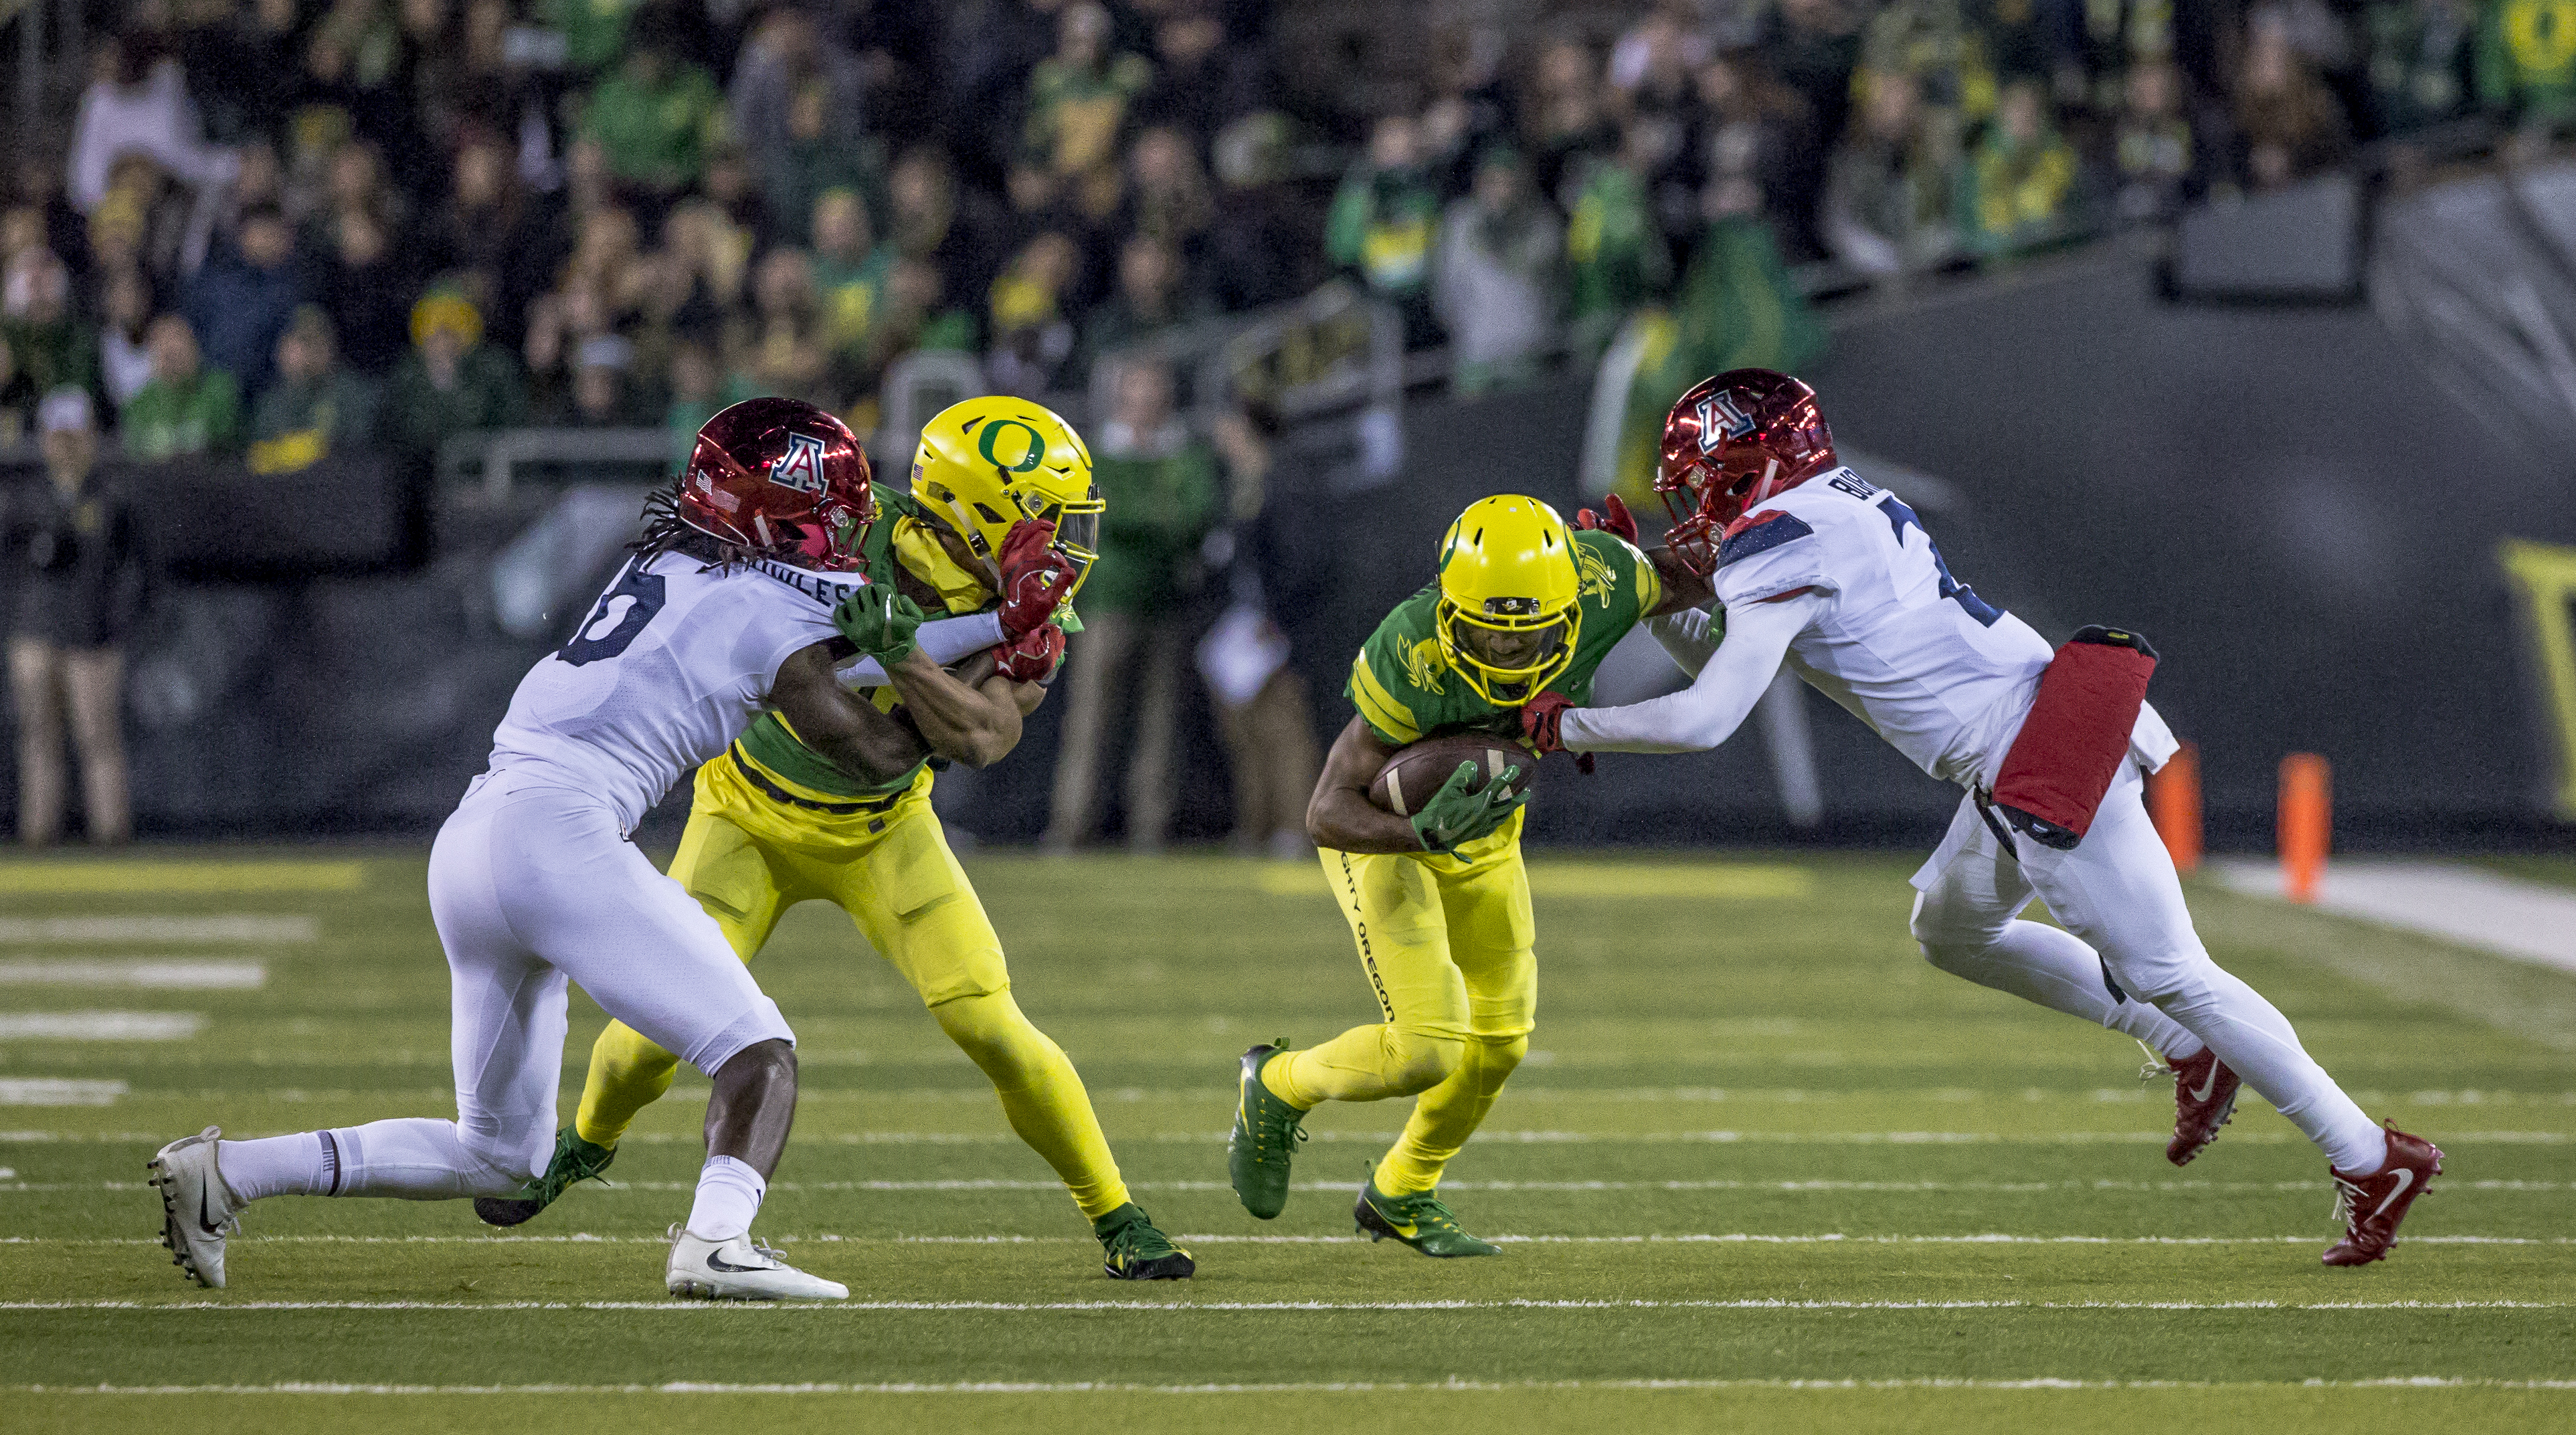 Oregon wide receiver Charles Nelson (#6) breaks runs past the Arizona defense. The Oregon Ducks lead the Arizona Wildcats 28 to 21 at the end of the first half at Autzen Stadium on Saturday, November 18, 2017. Photo by Ben Lonergan, Oregon News Lab